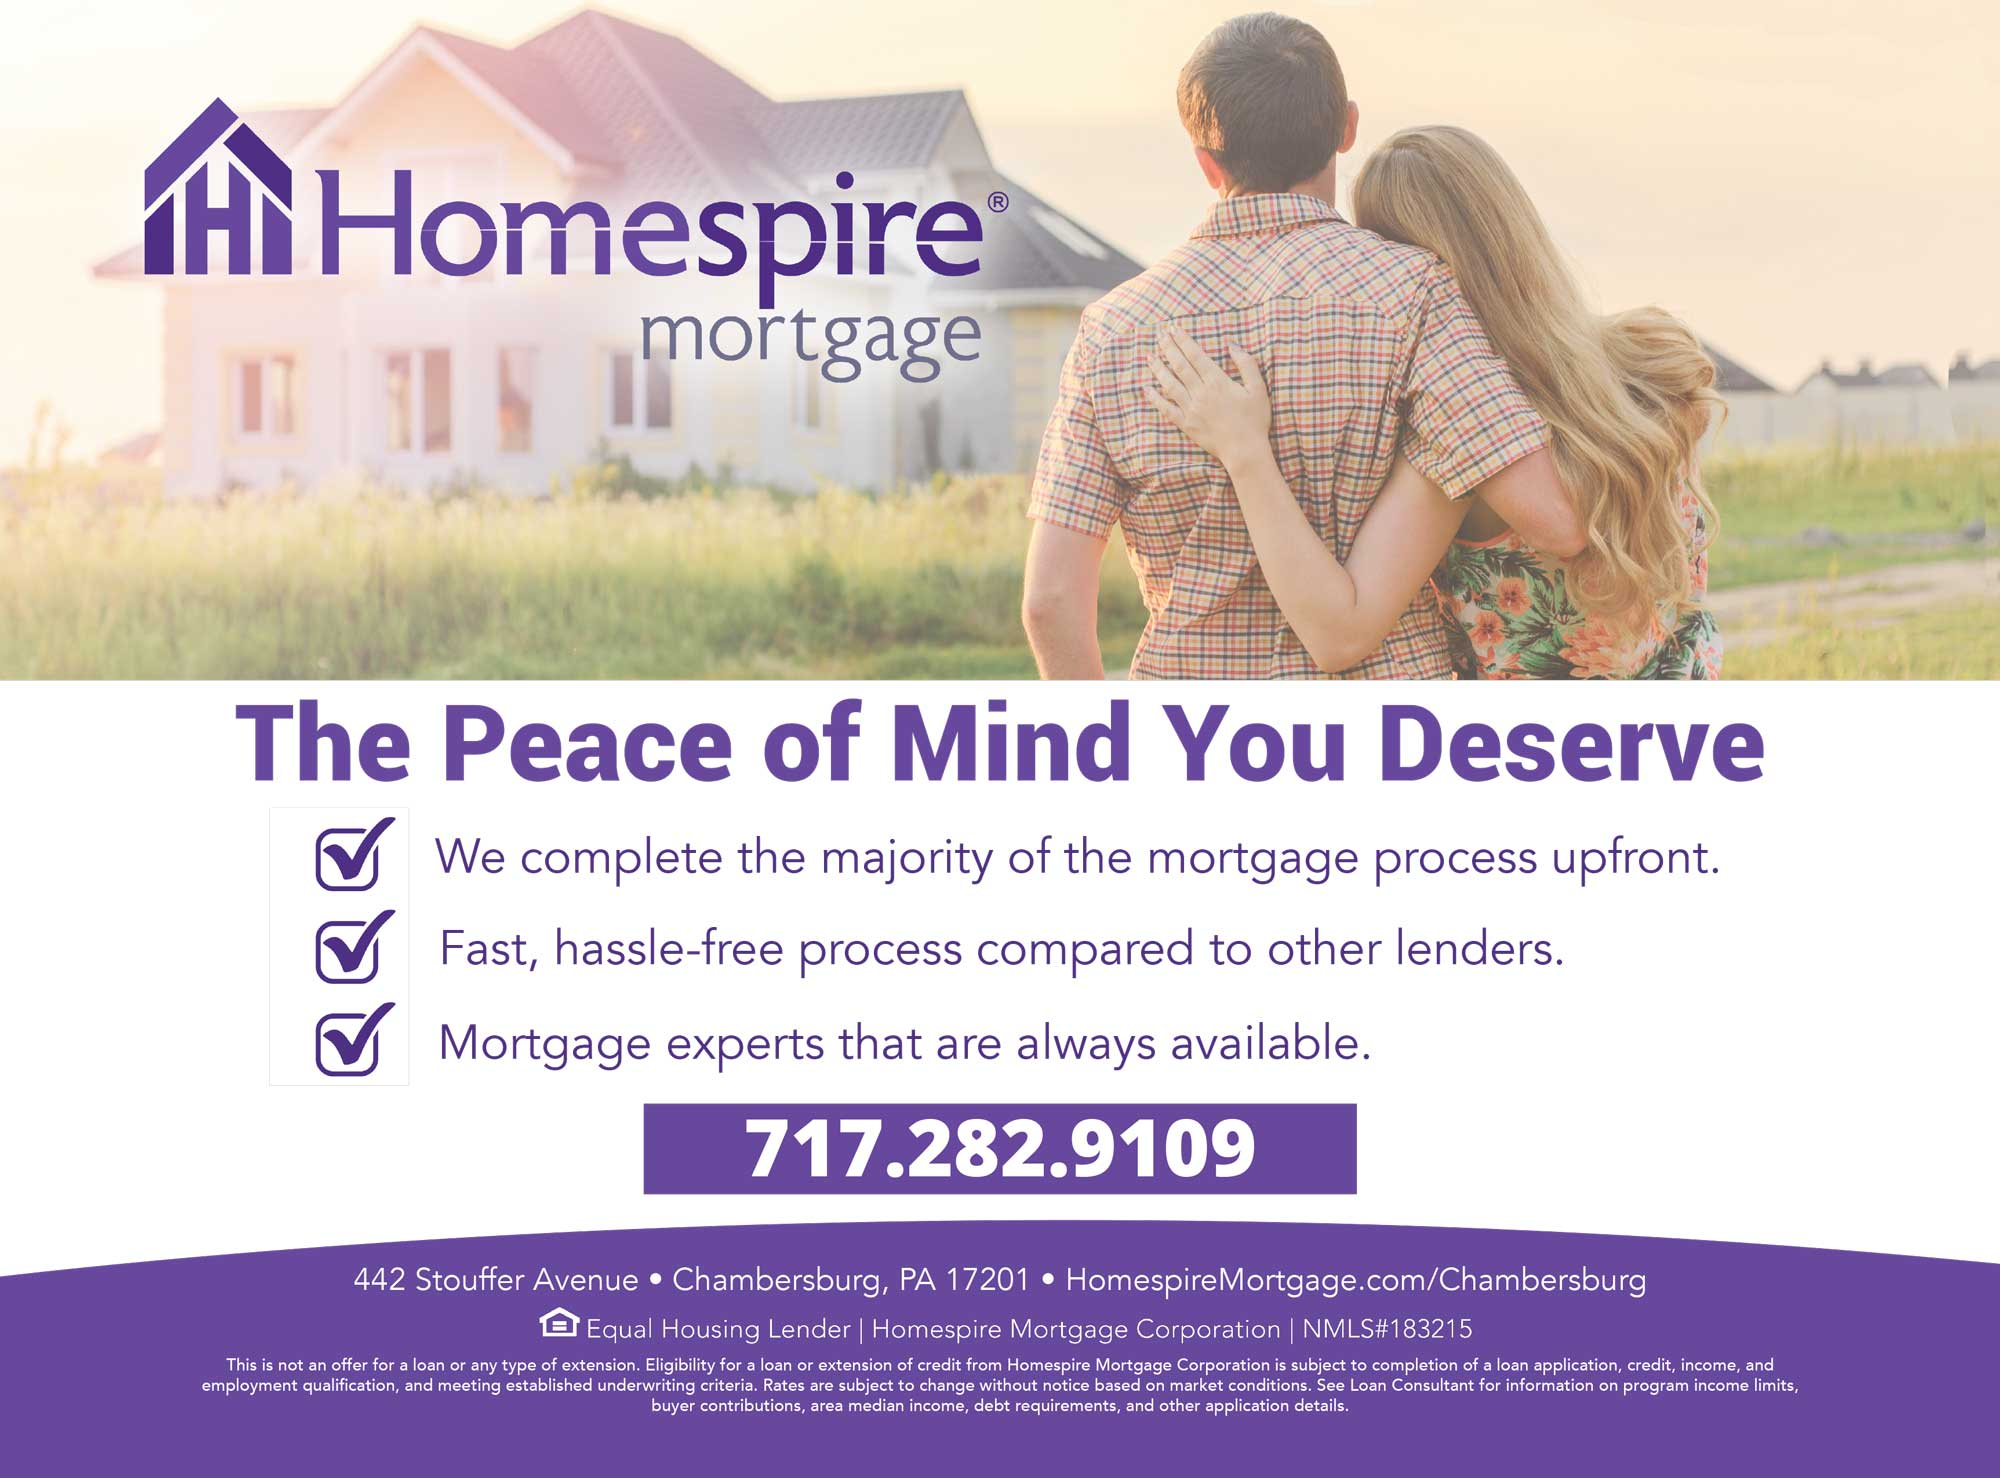 """<center>Homespire Mortgage   <b><a href=""""https://www.homespiremortgage.com"""" target=""""_blank"""" rel=""""noopener noreferrer"""">CLICK HERE to view the website</a></b></center>"""